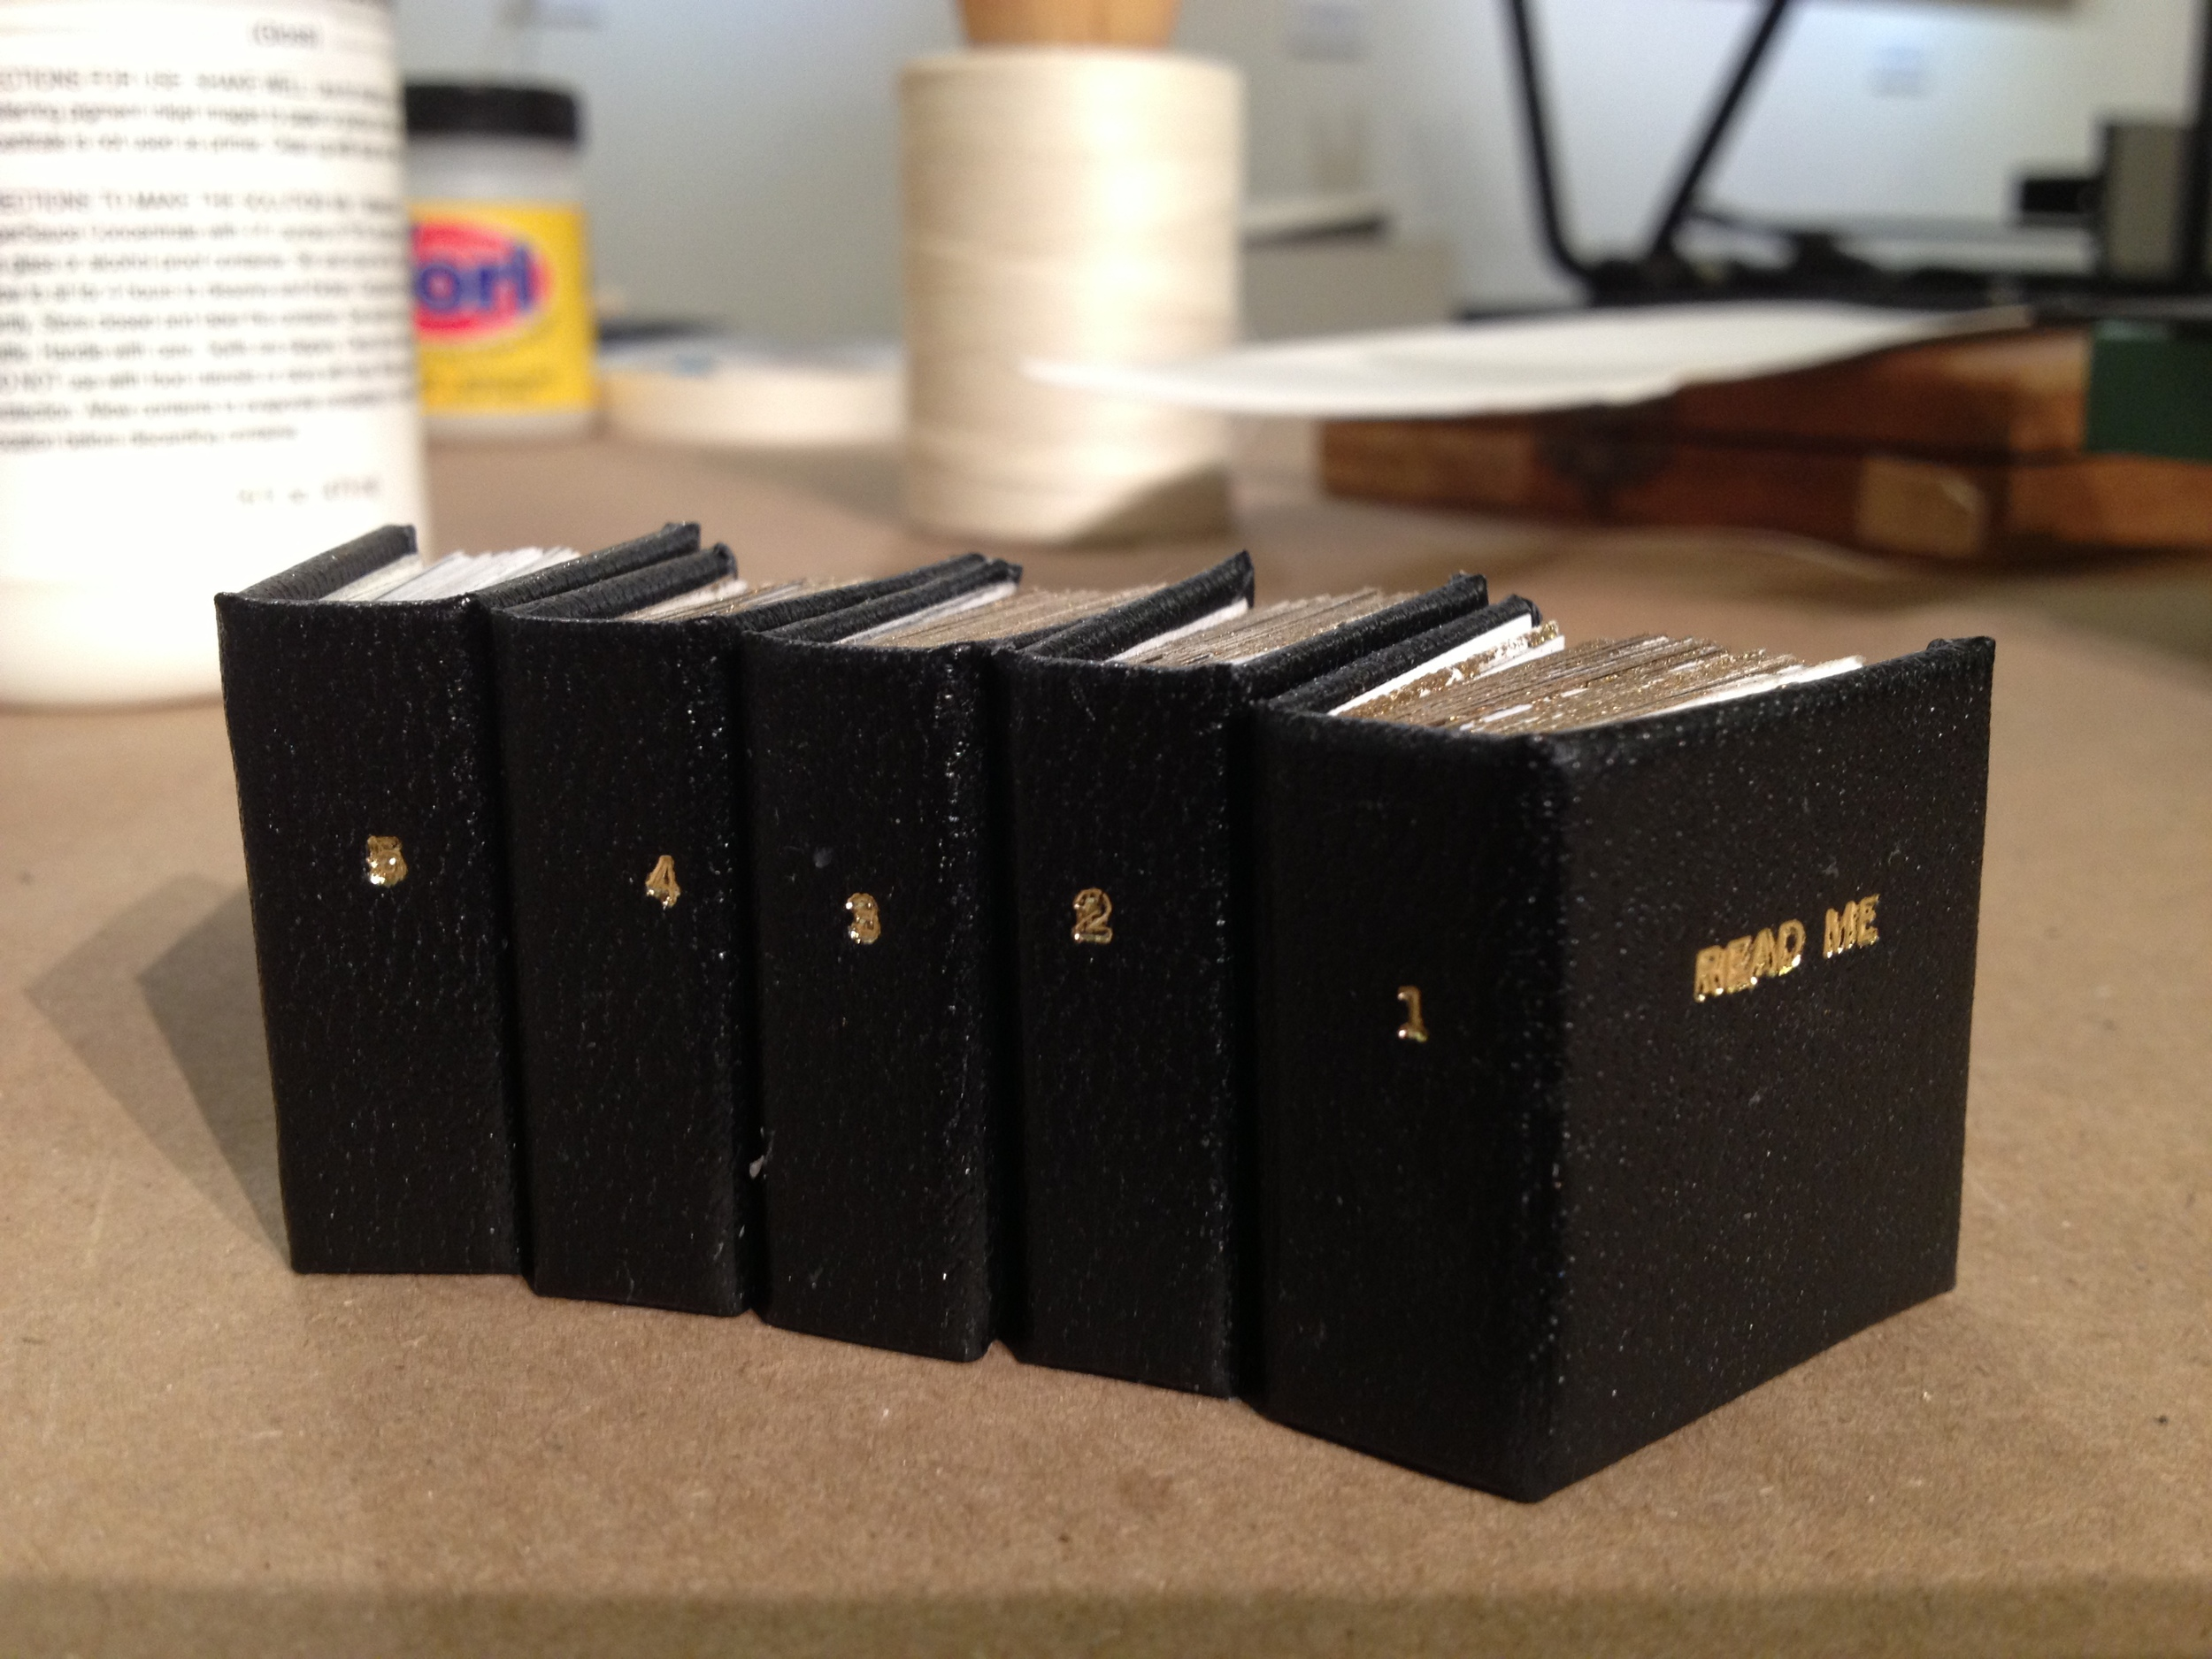 Mini books. To be continued...